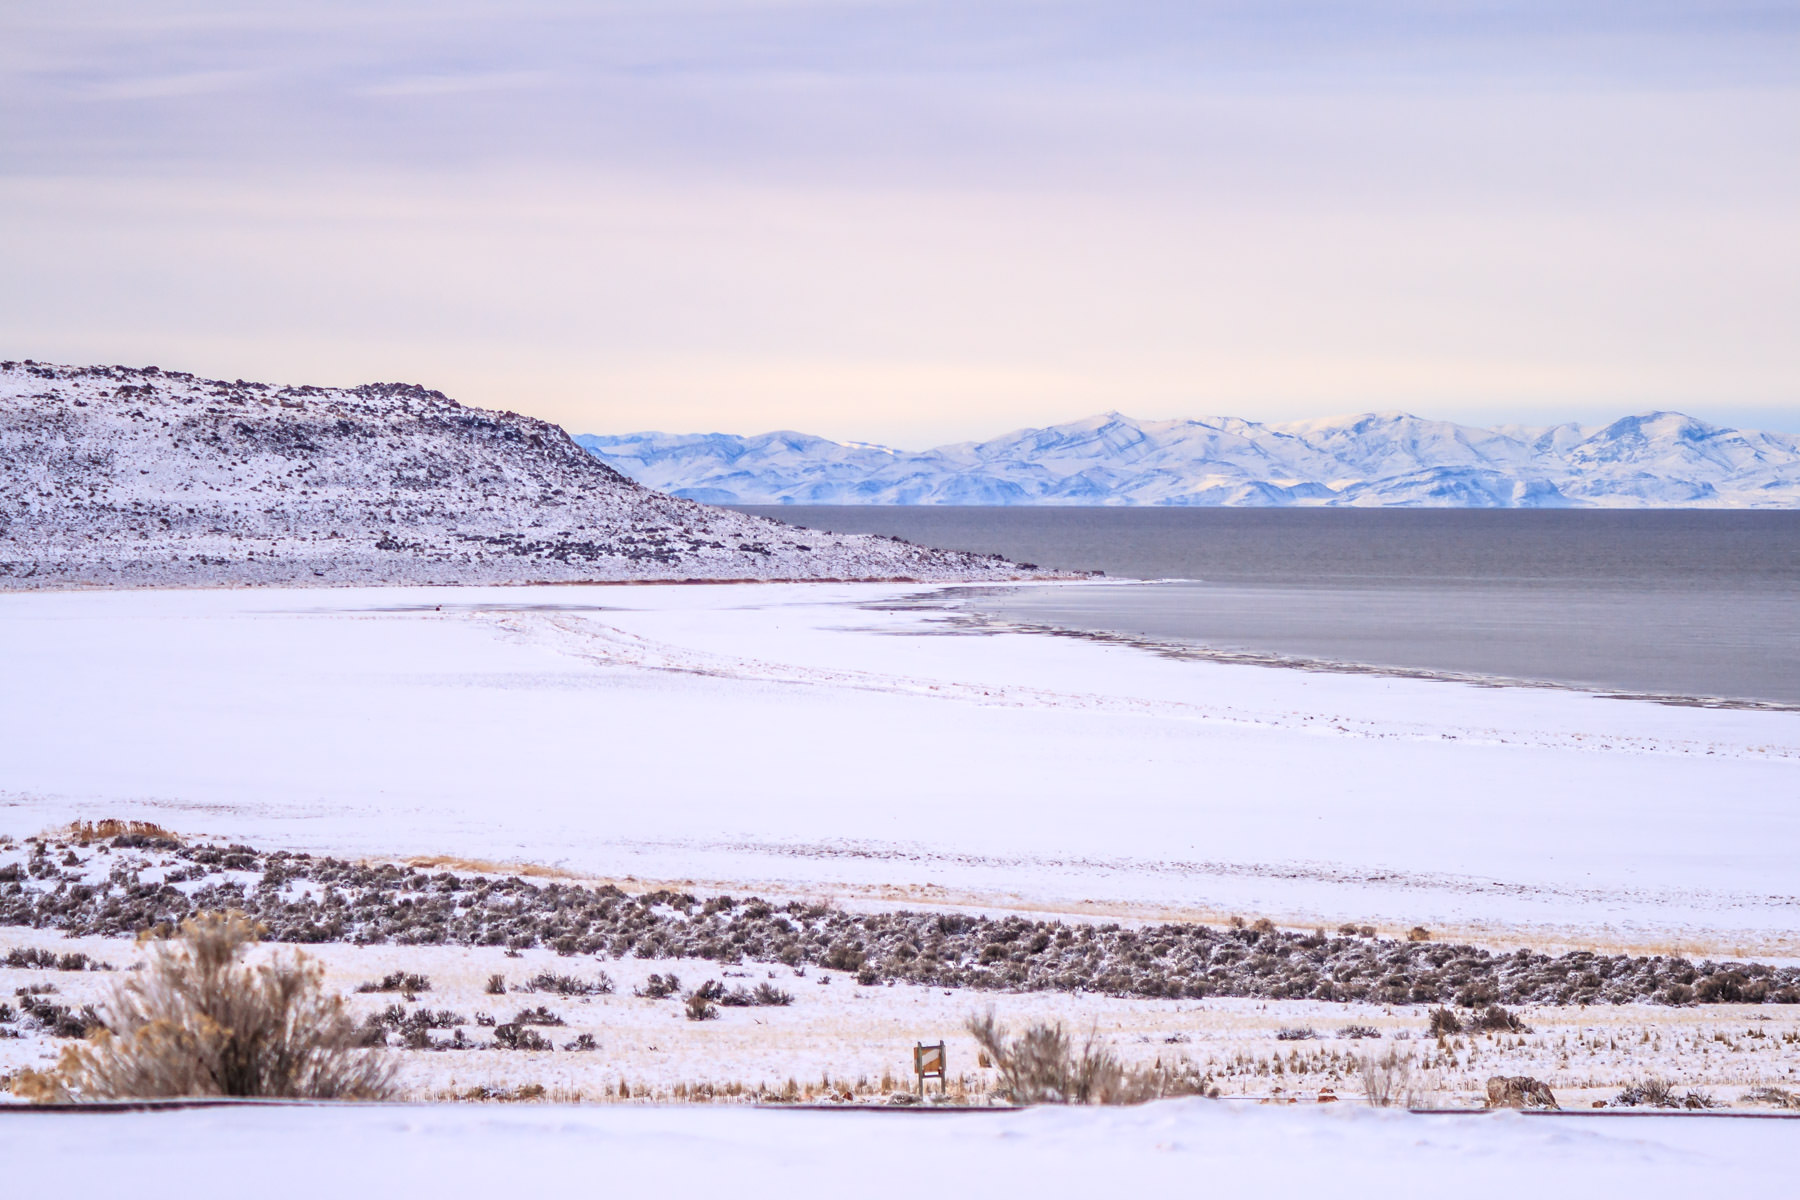 Looking from Antelope Island State Park across the Great Salt Lake, Utah.